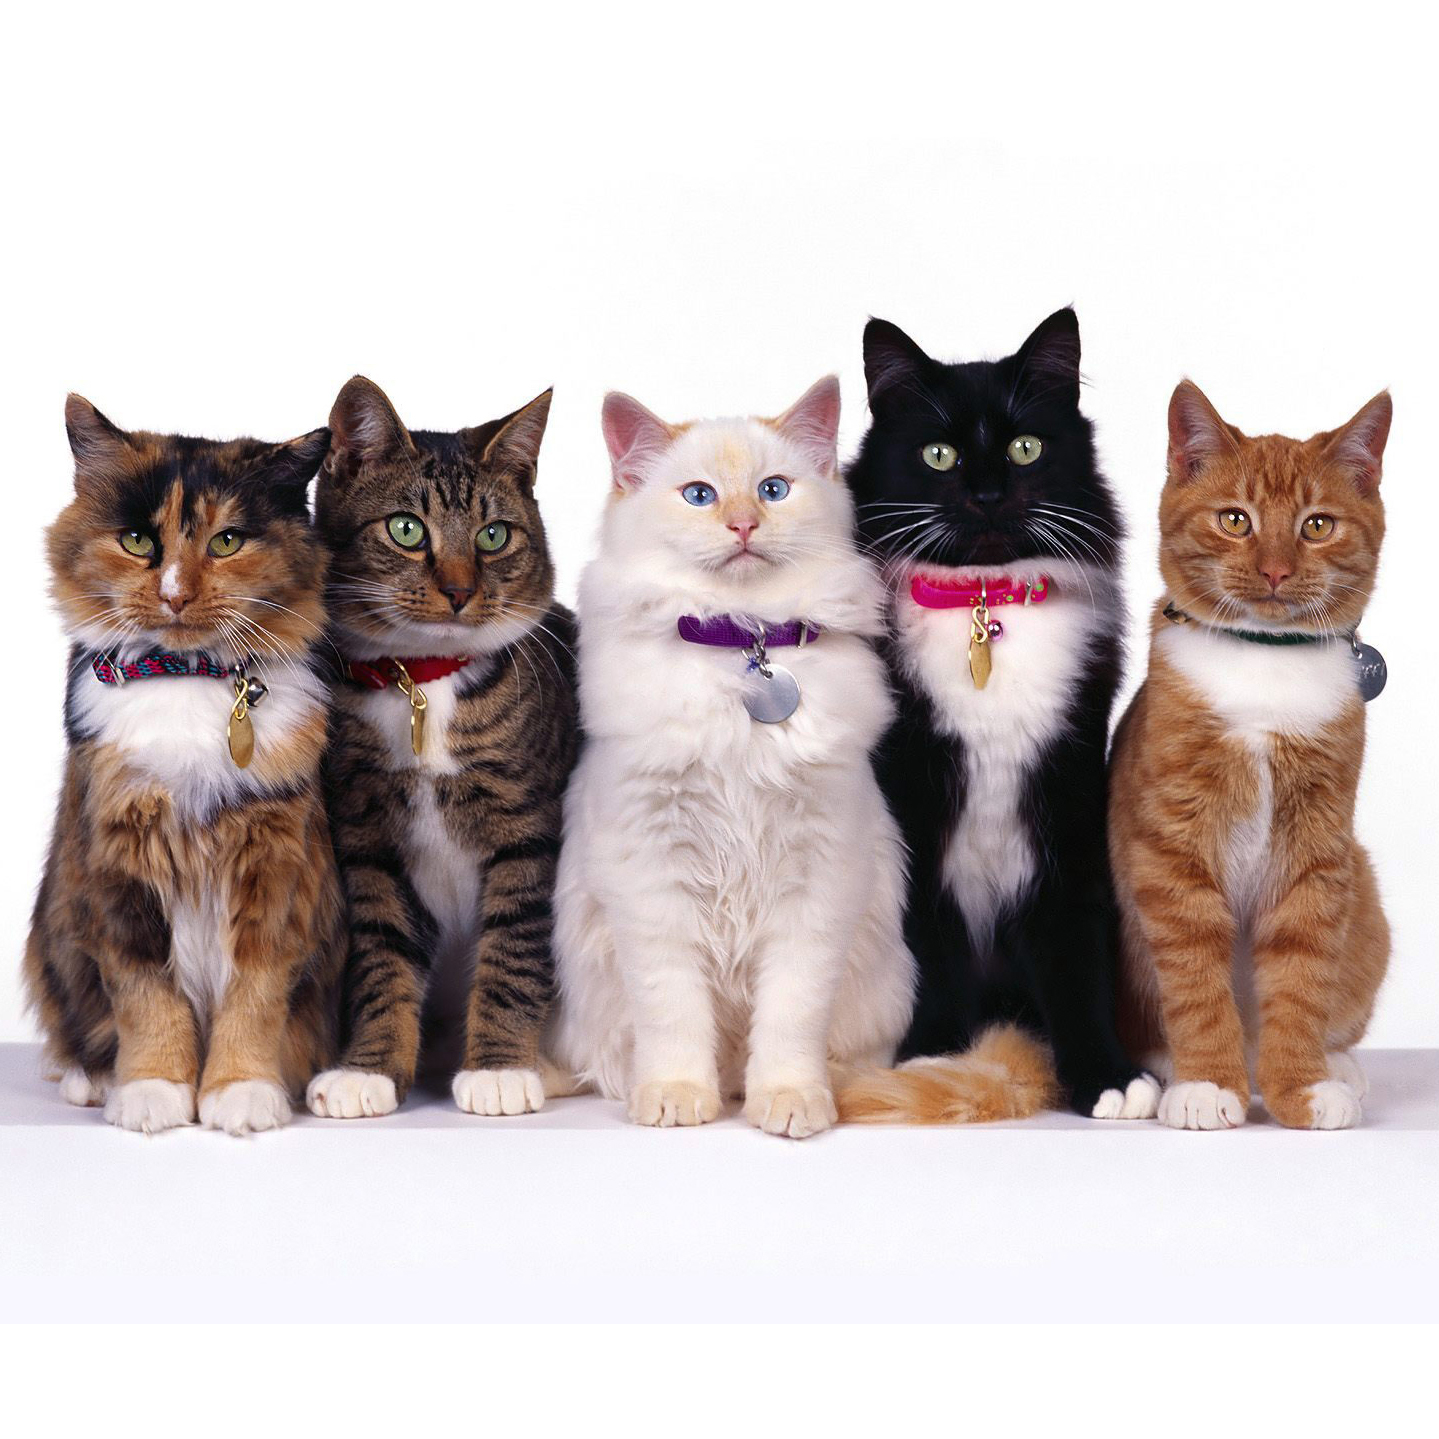 Multiple cats of different breeds